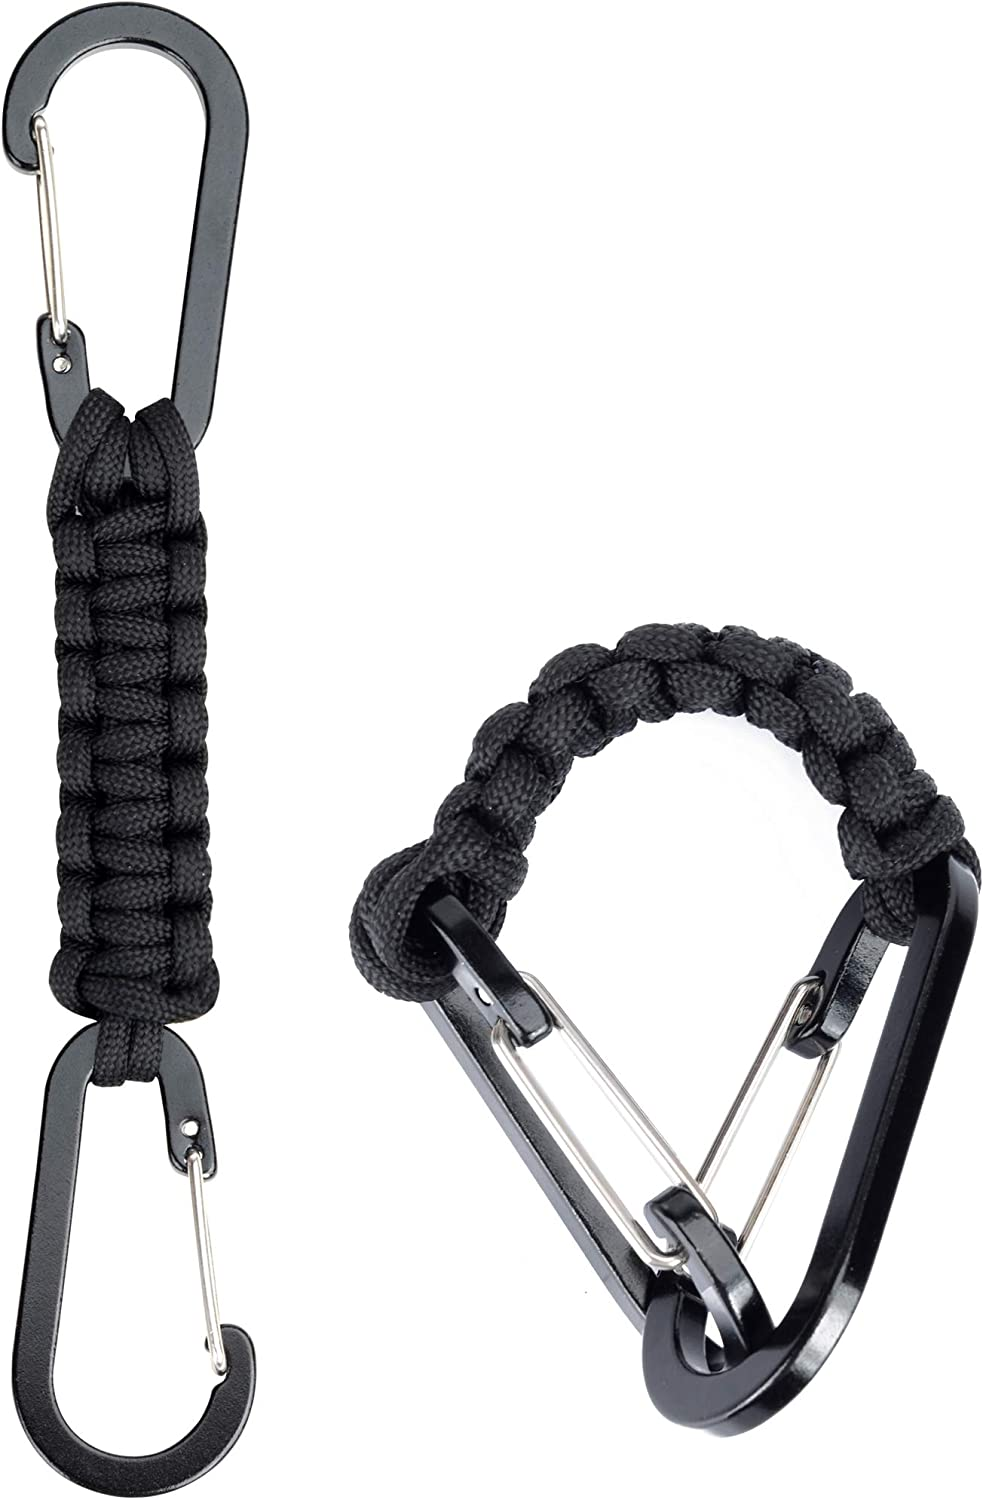 2 PCS Tactical Multi-functional Paracord Keychains with Rings Lanyards Key Chain